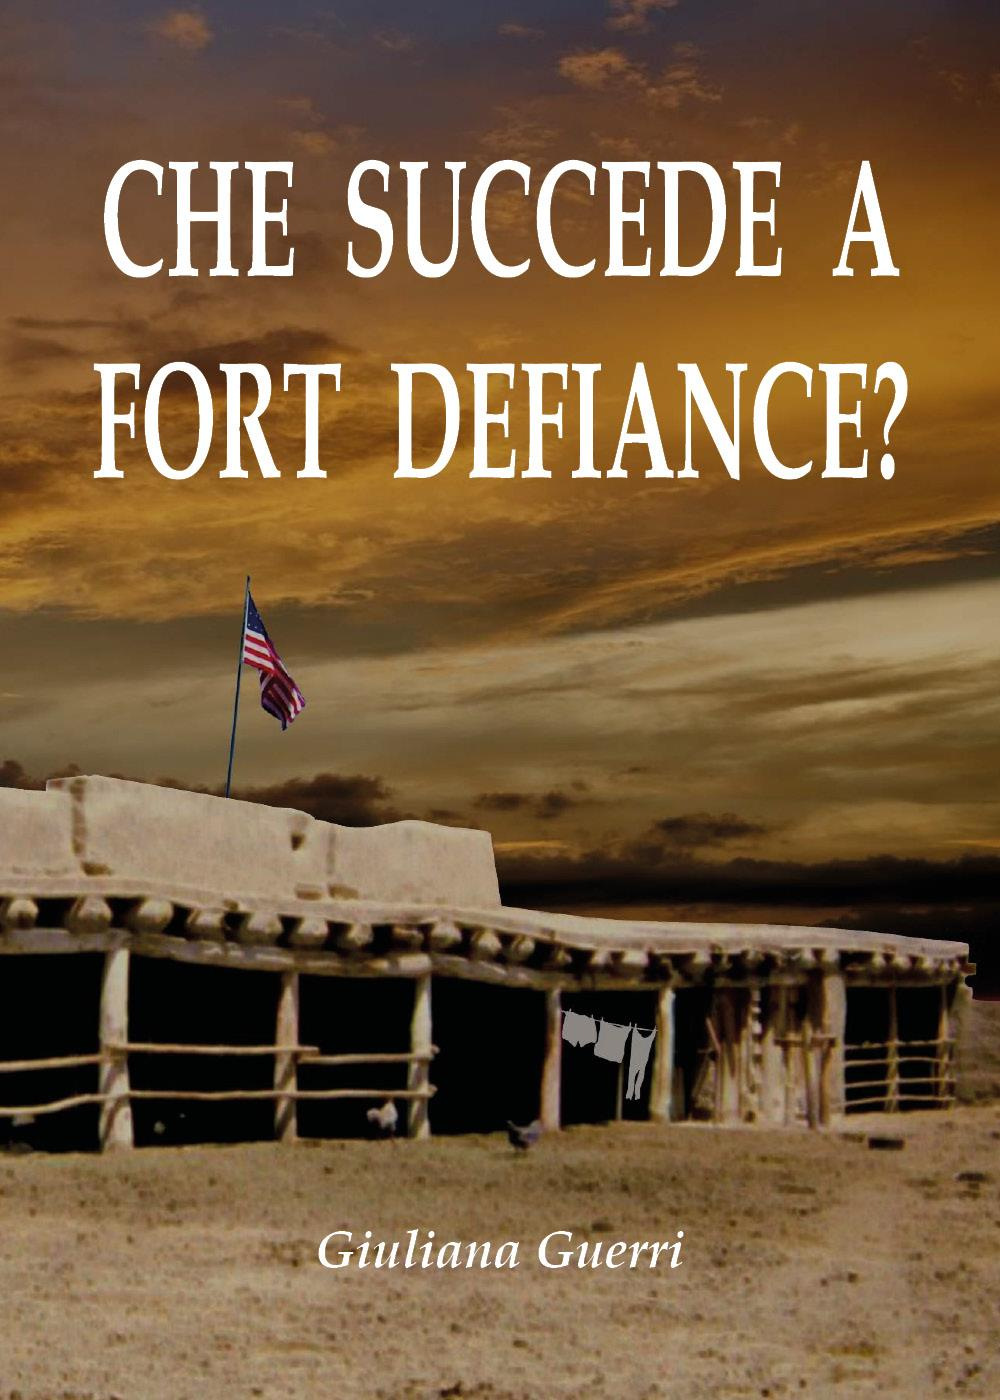 Che succede a Fort Defiance?